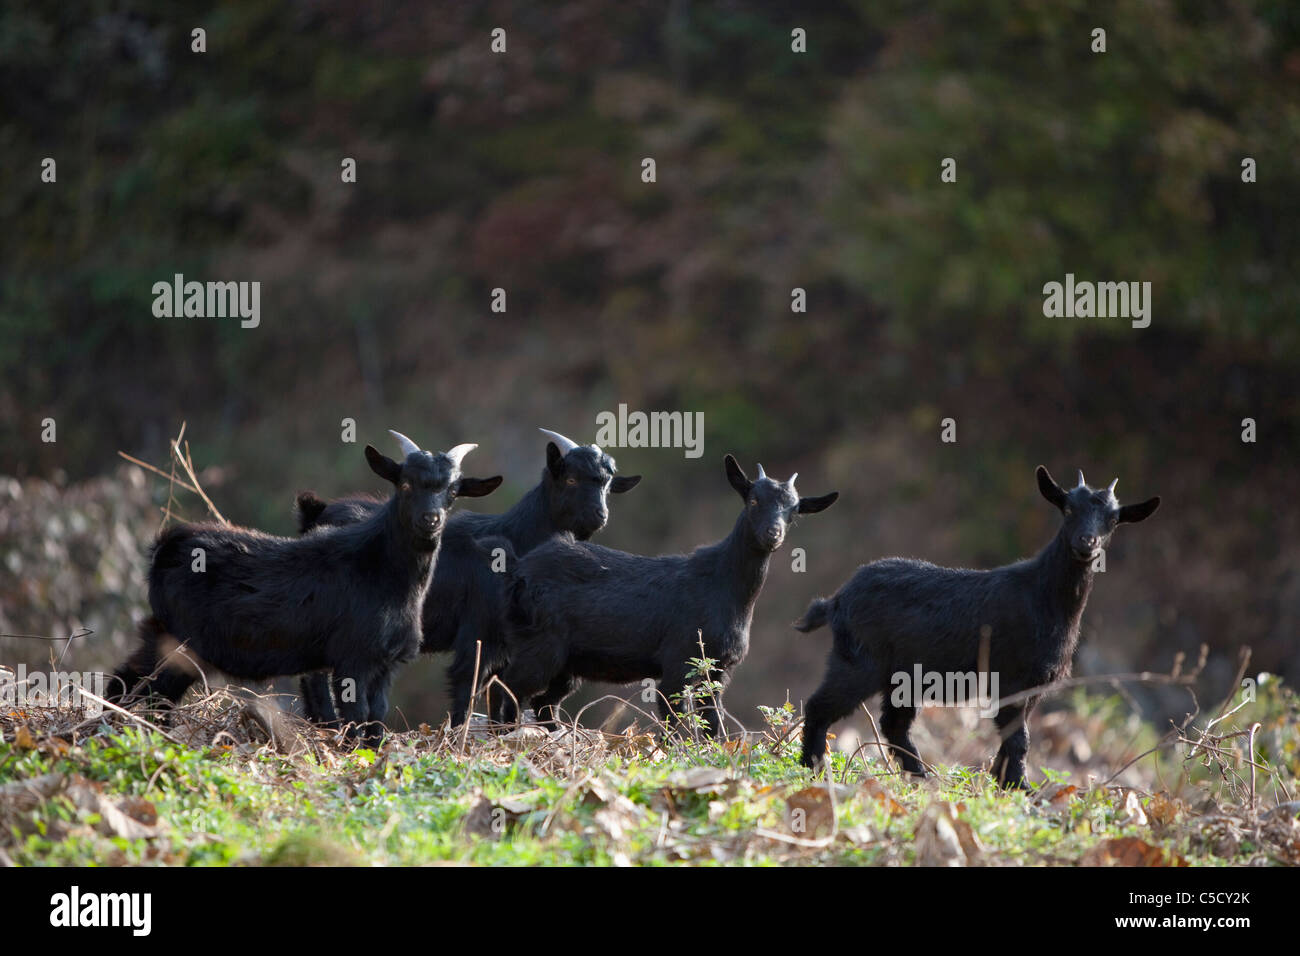 herd of black goat Stock Photo